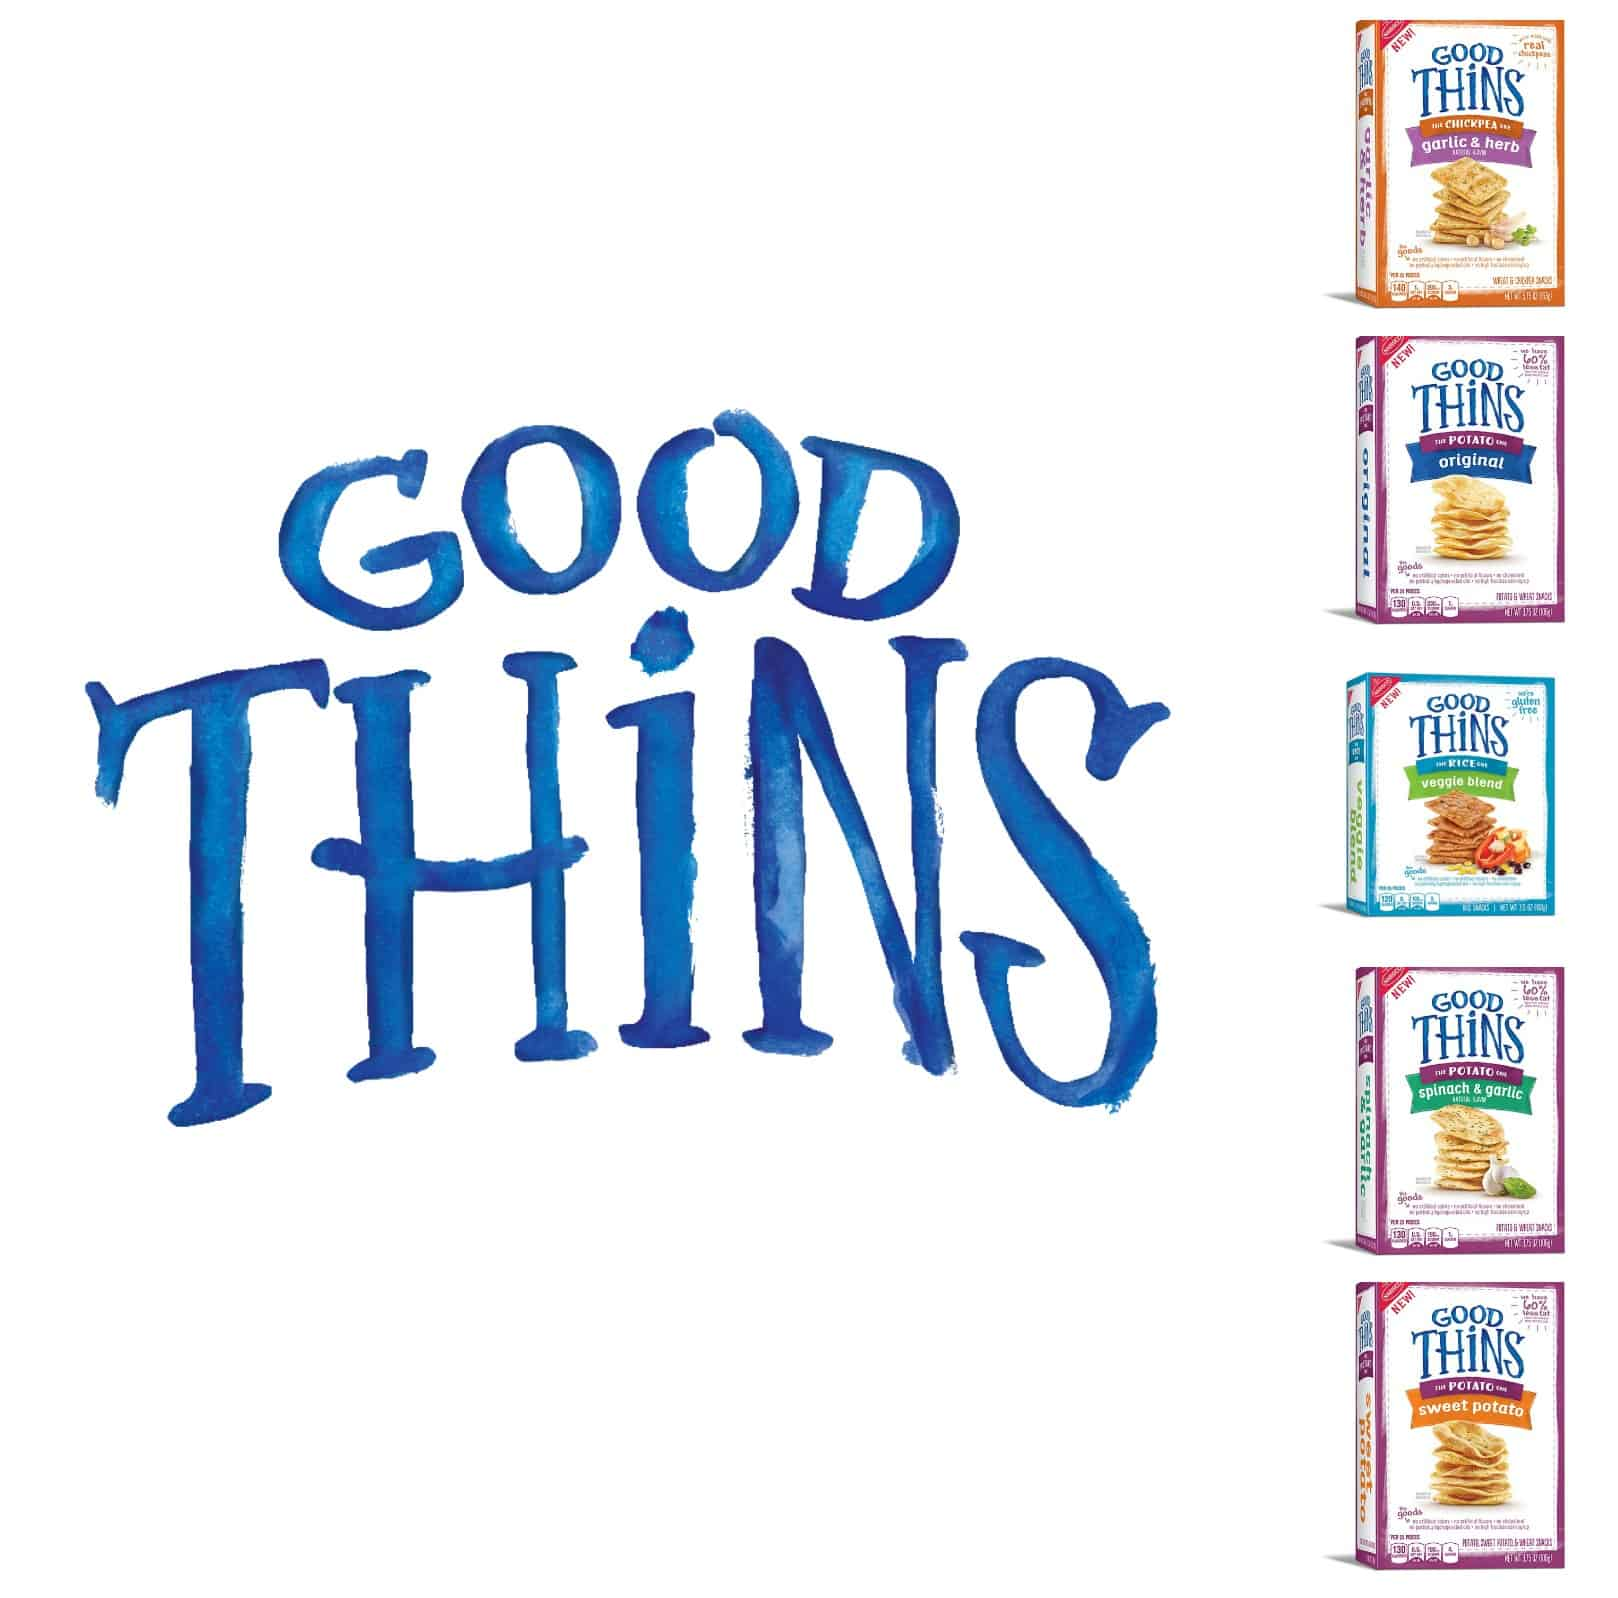 GOOD THiNS Snack- a tasty and easy snack!